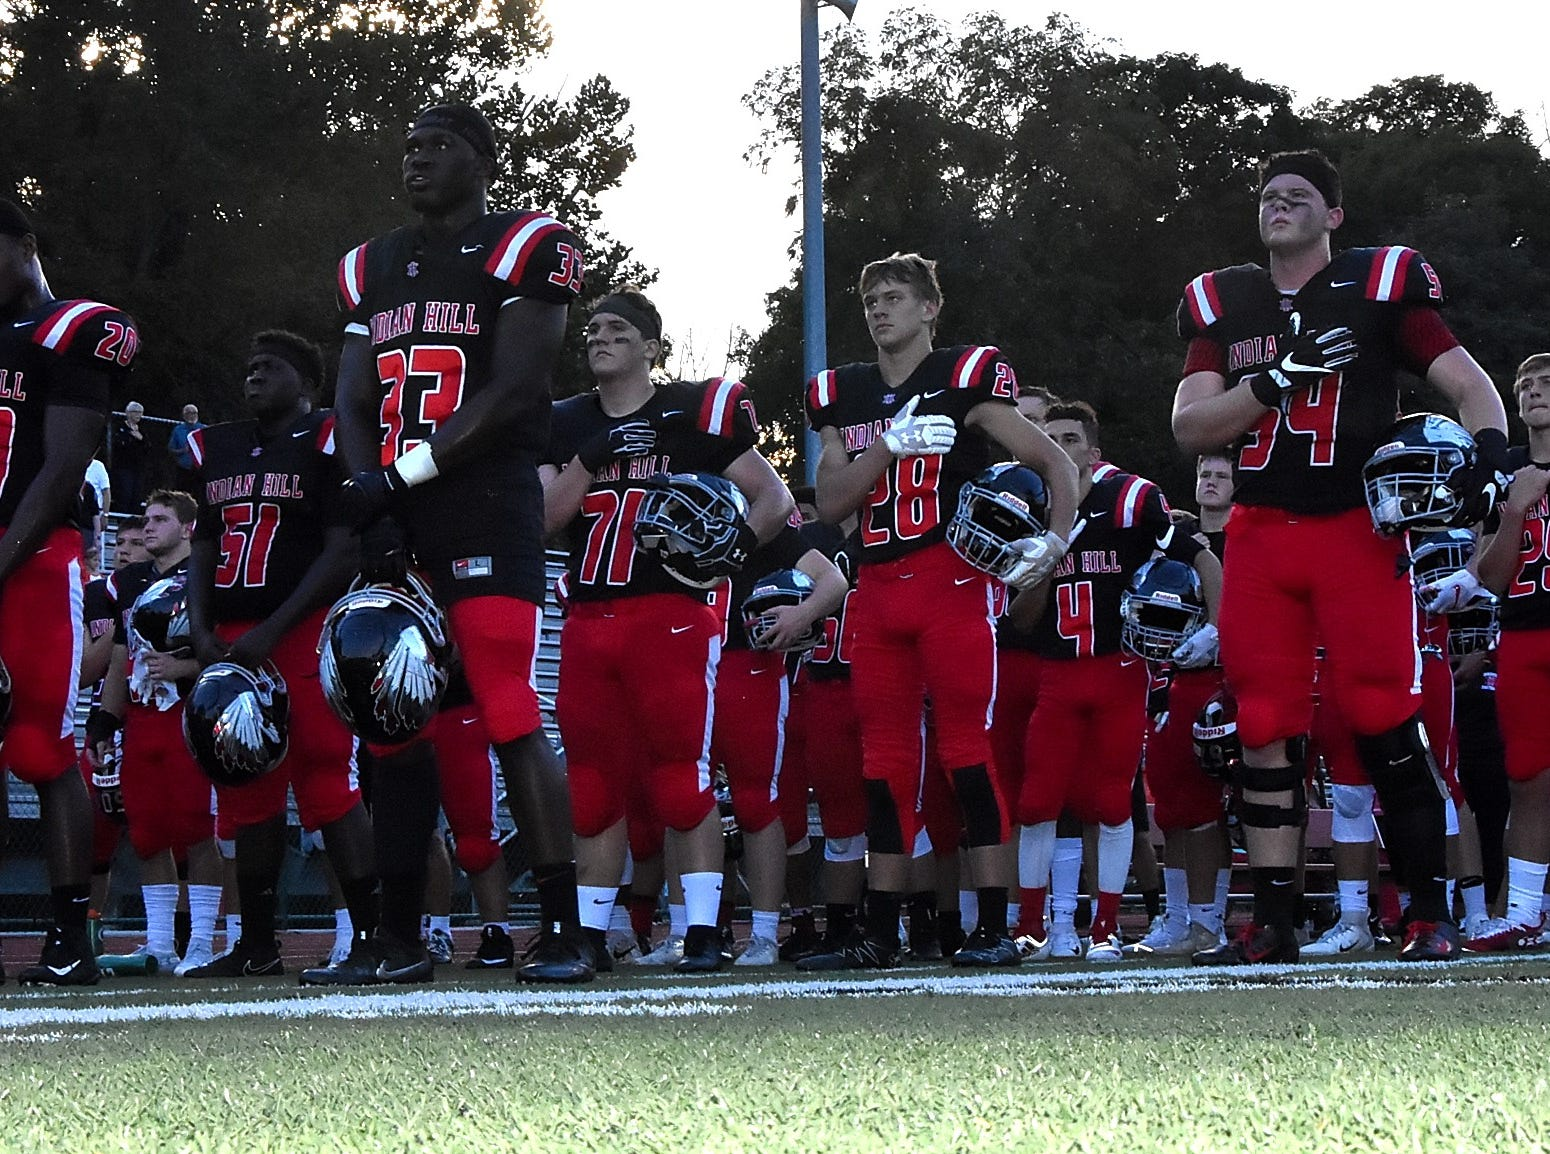 The Indian Hill Braves Football team stands in honor of America during The National Anthem, Sept. 14, 2018.